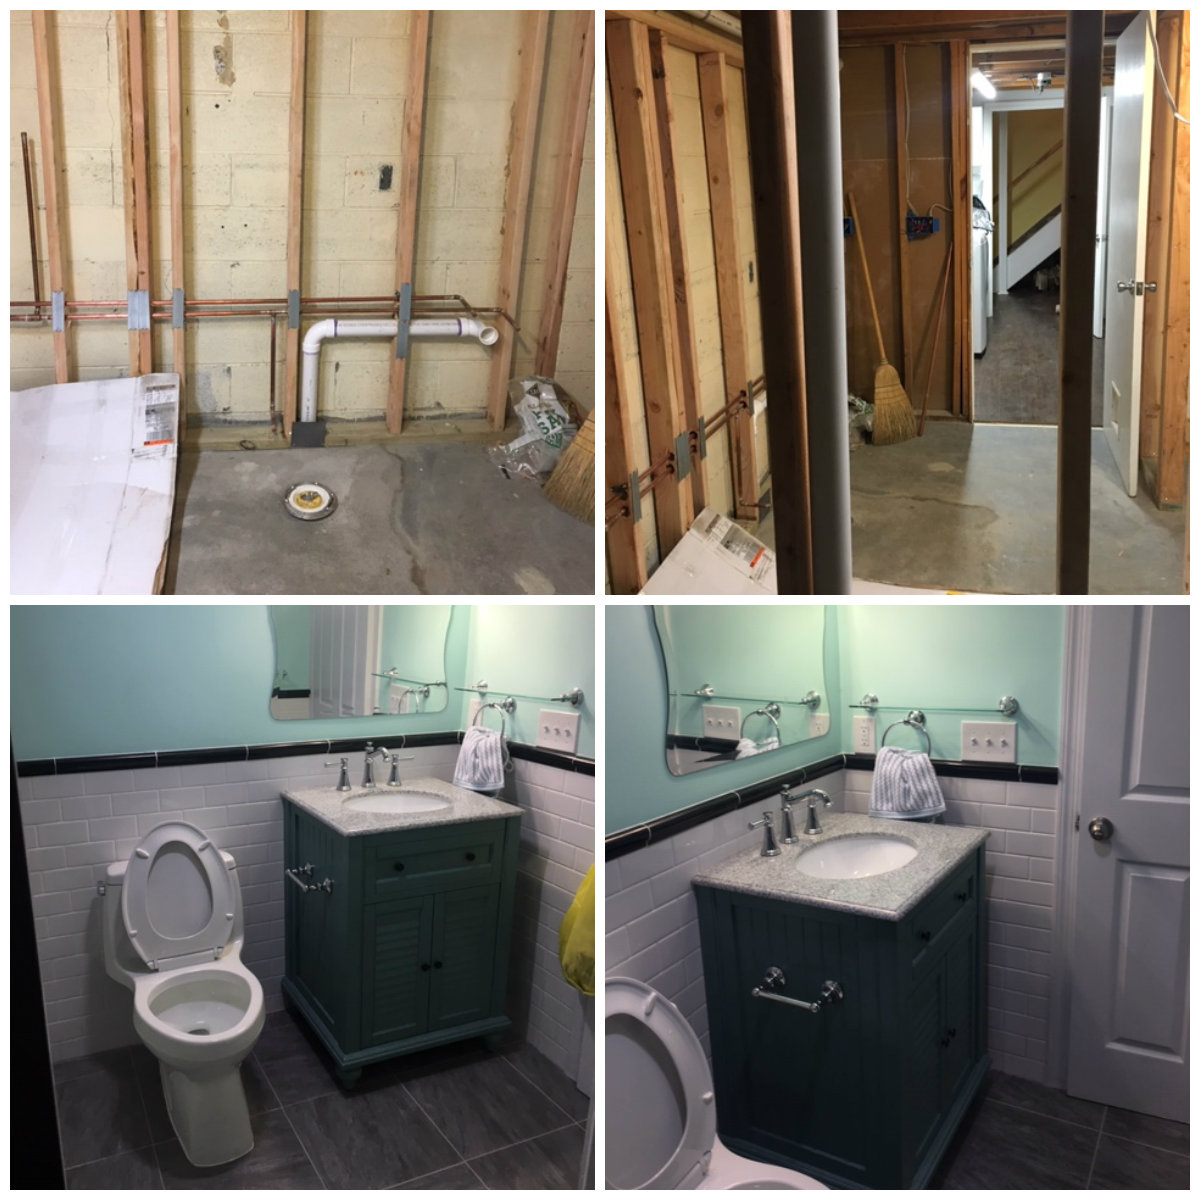 Unfinished basement remodel - Watchung NJ - B & B Maintenance